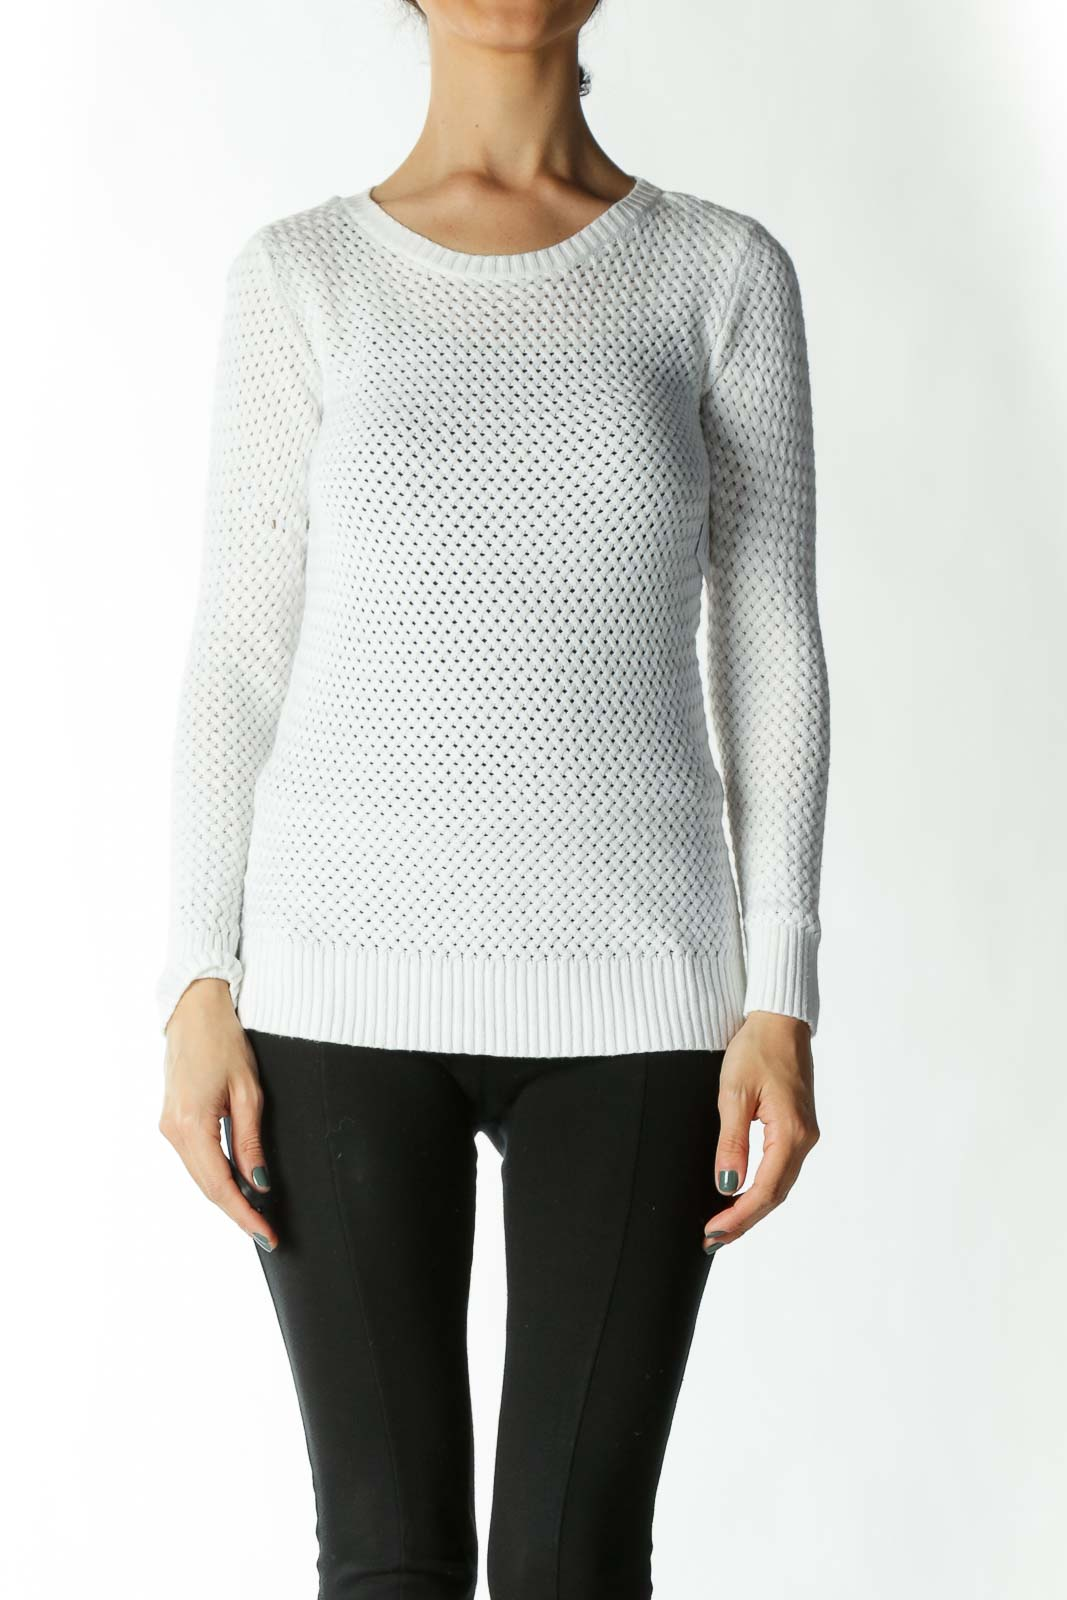 White Crocheted Knit-Back Light-Weight Sweater